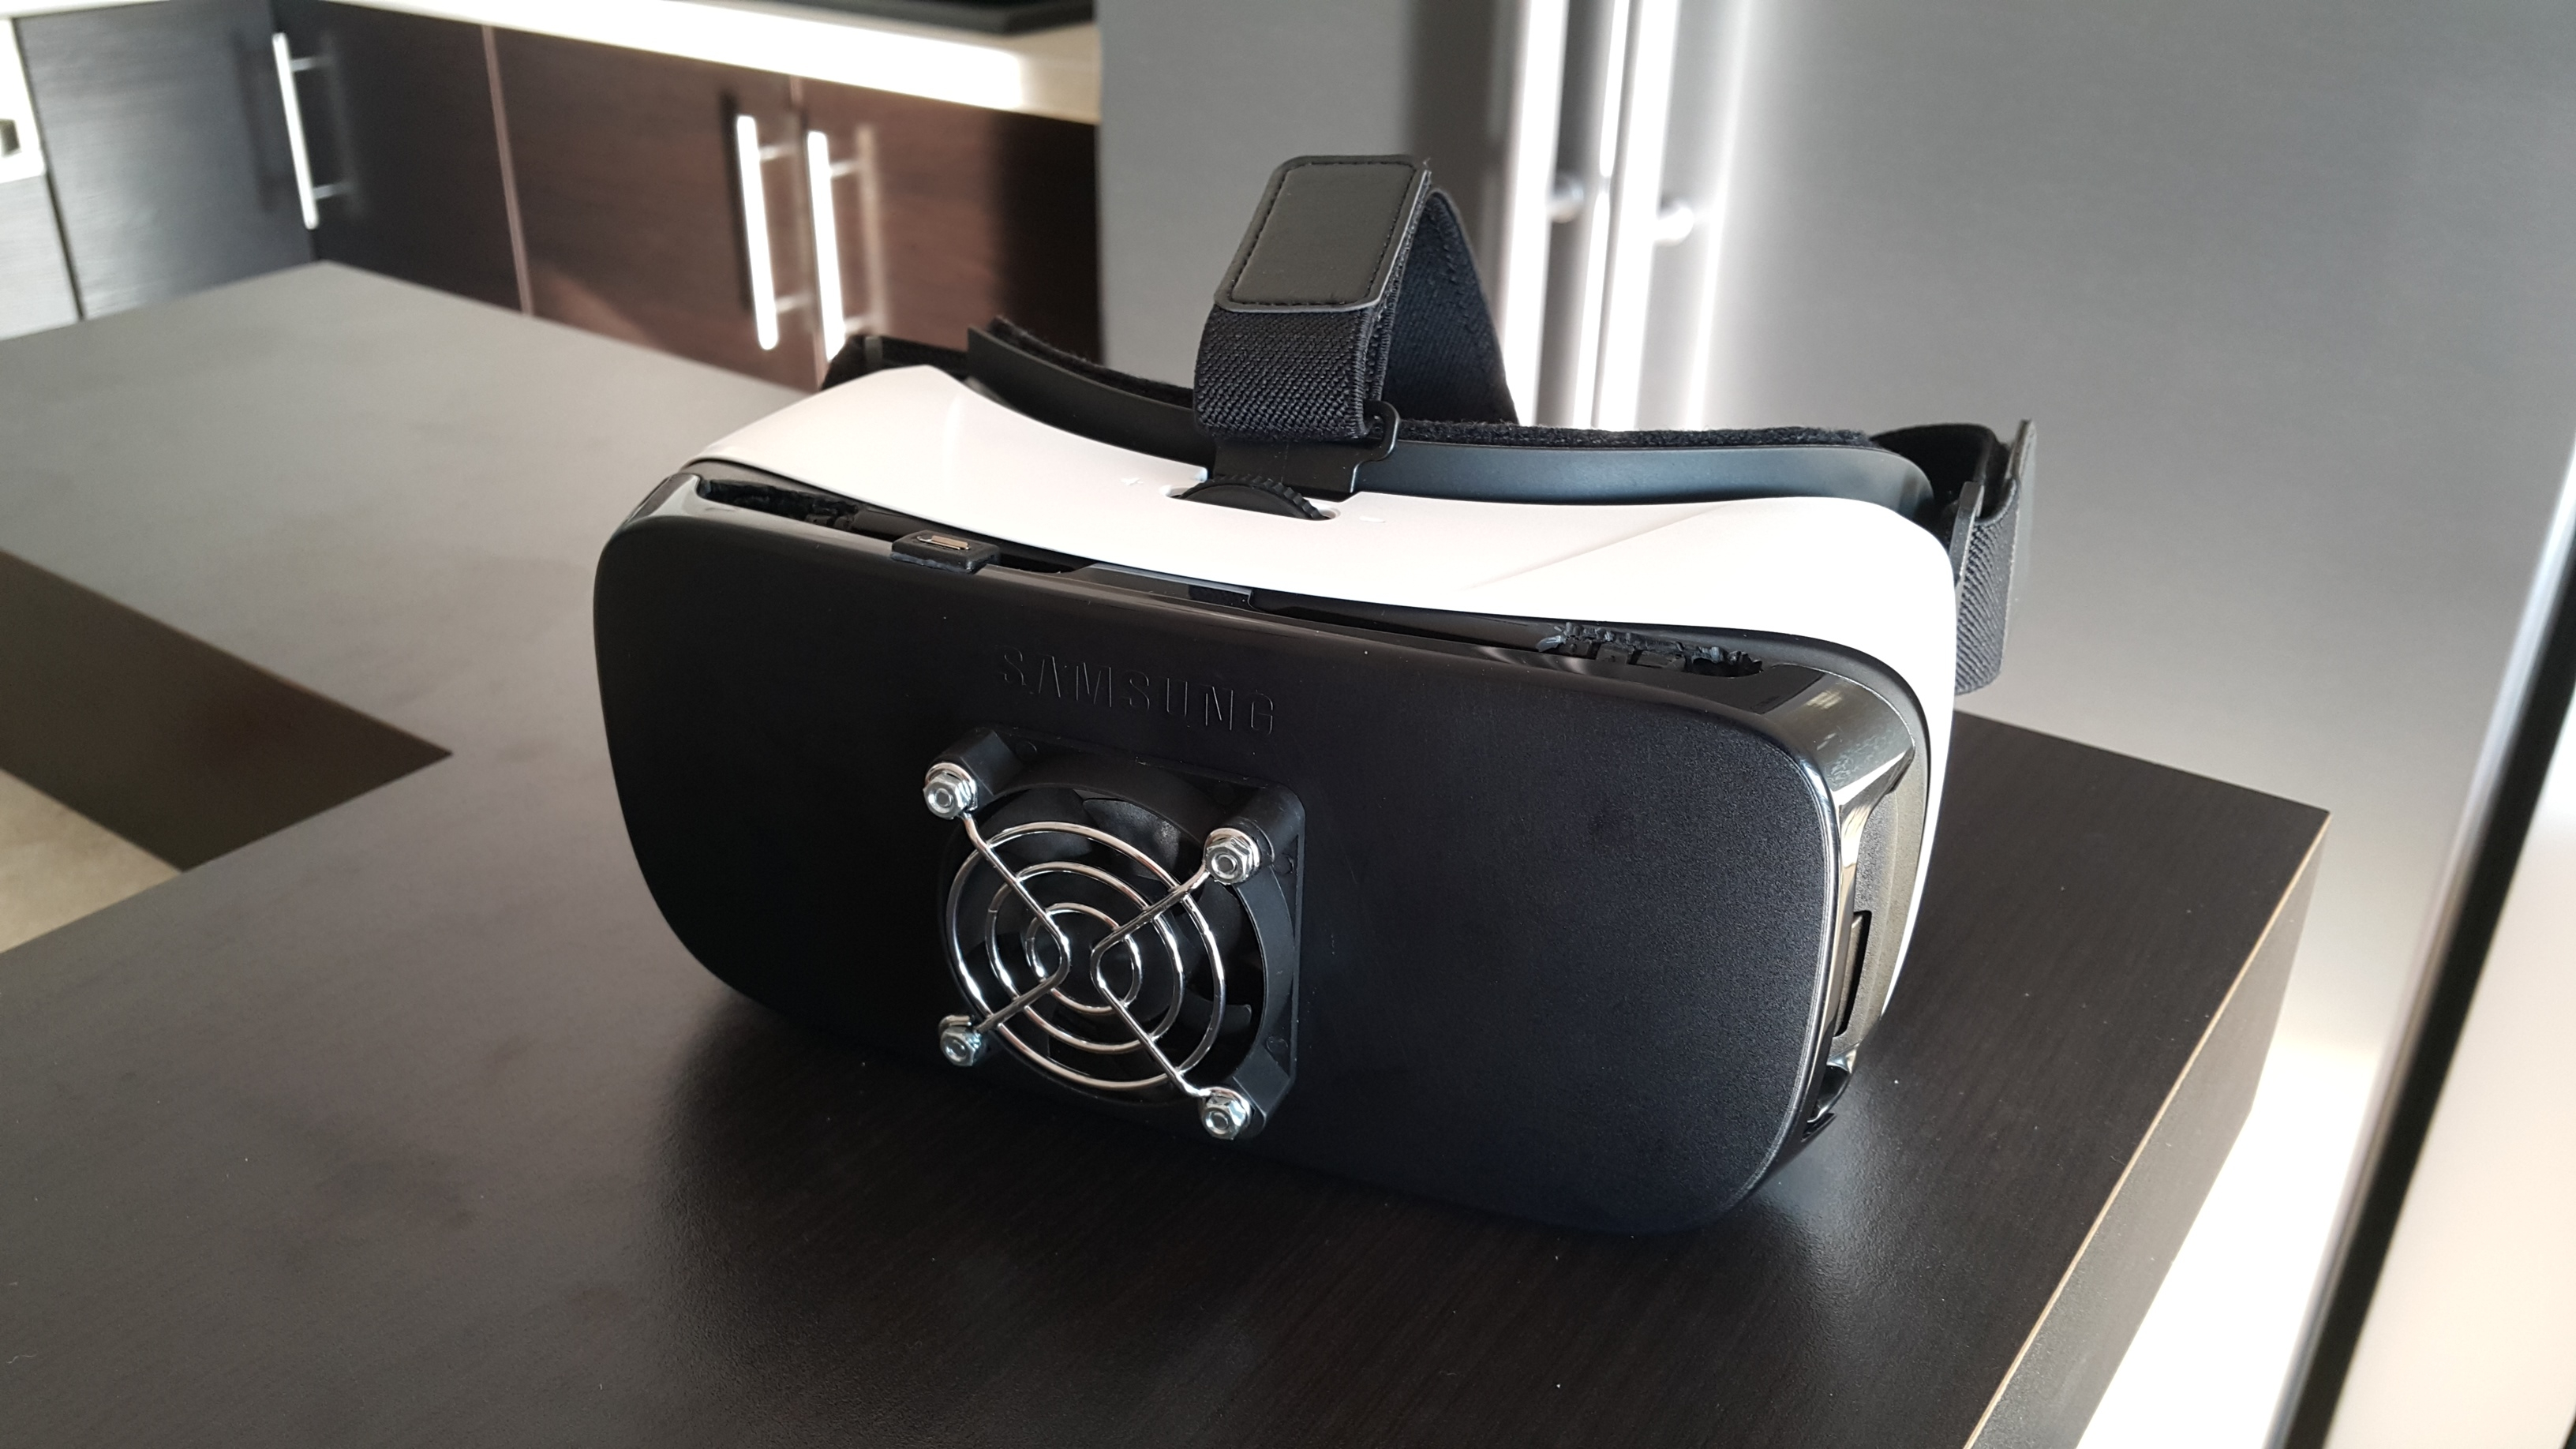 Note 4 Gear Vr Consumer Edition My Overheating Solution Oculus